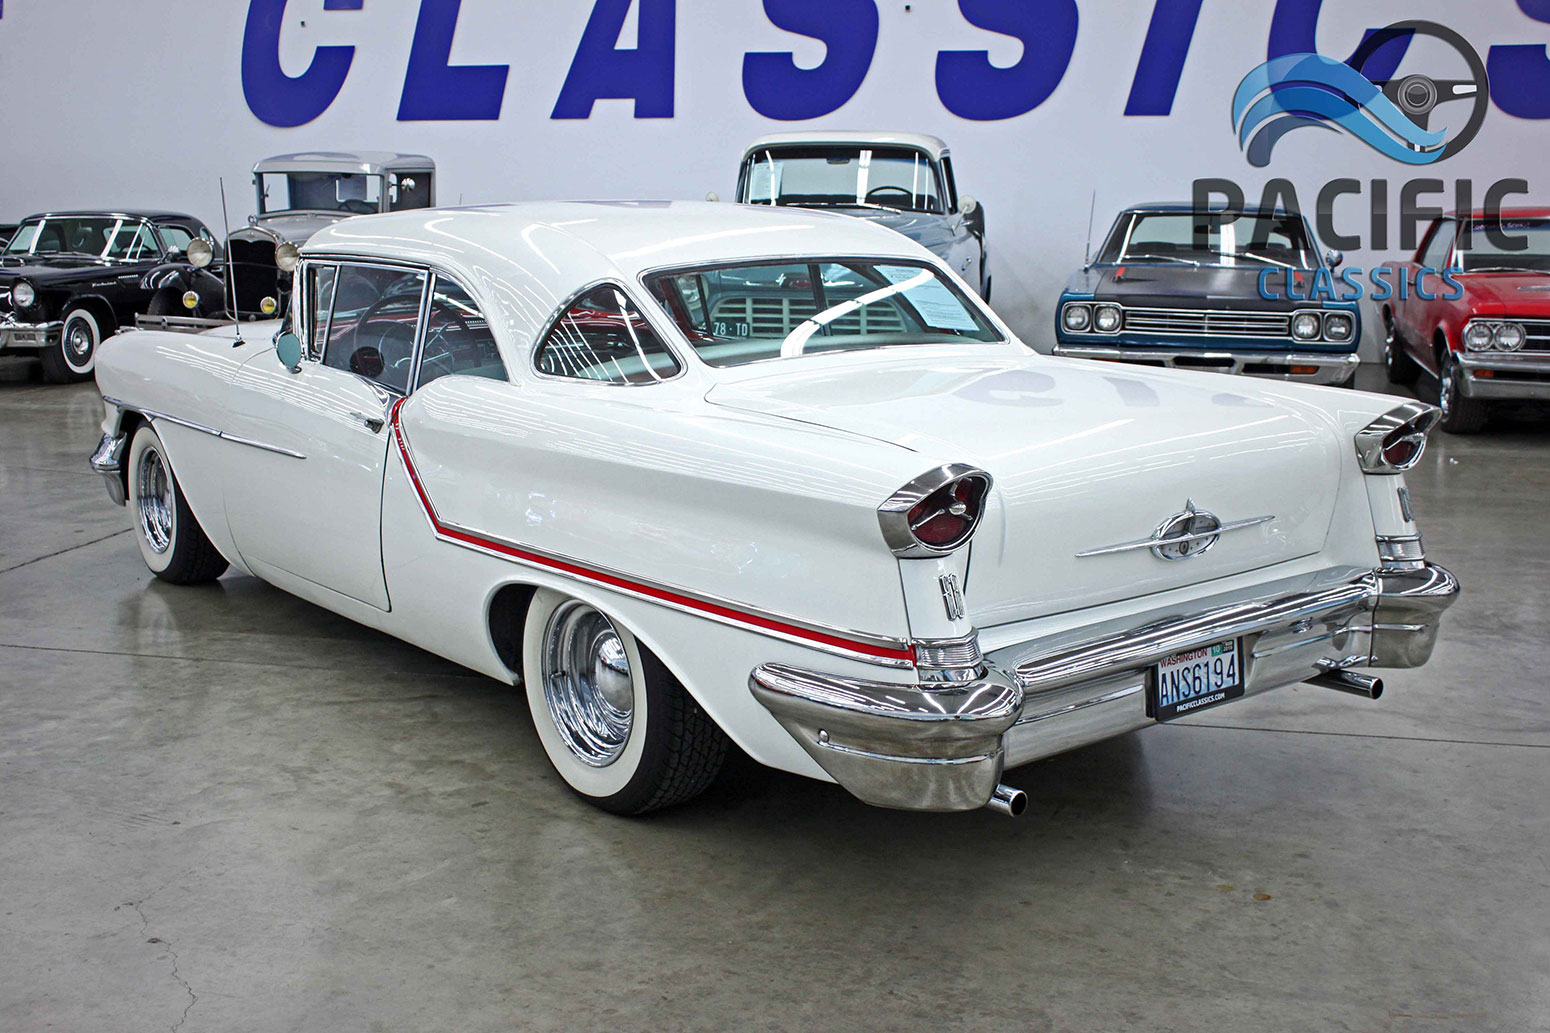 1957 Oldsmobile Golden Rocket 88 Pacific Classics